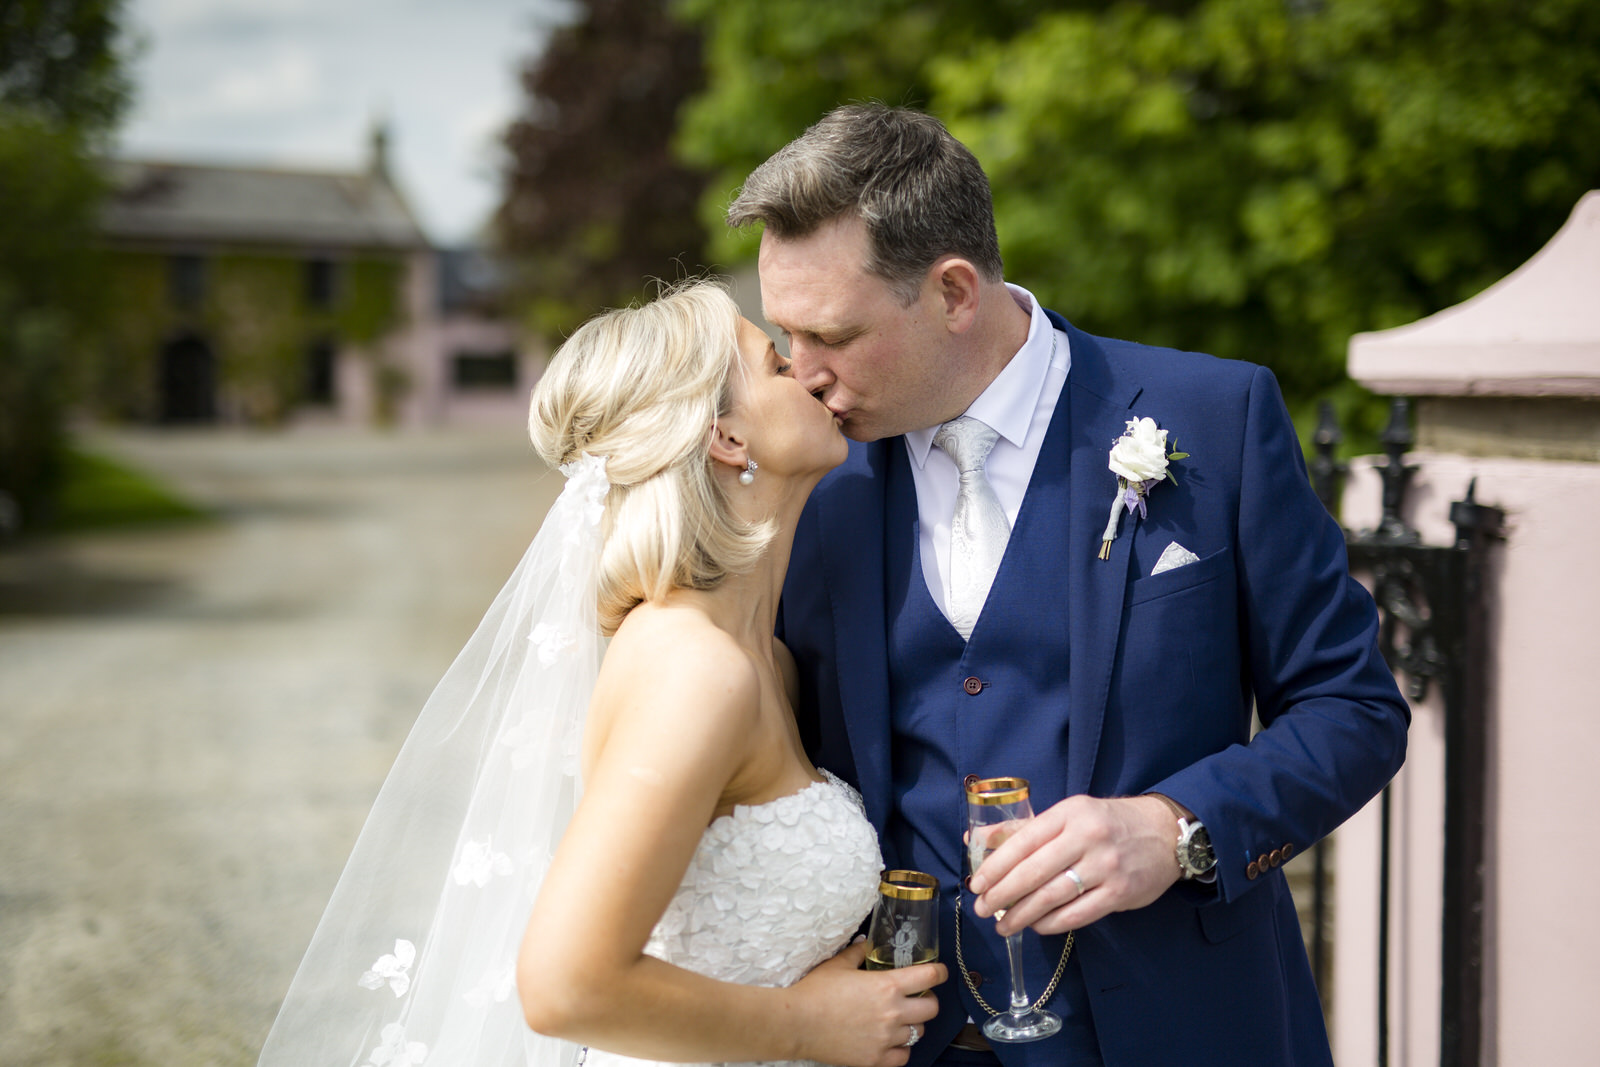 Ashley_park_wedding_photographer_ireland_a166.jpg